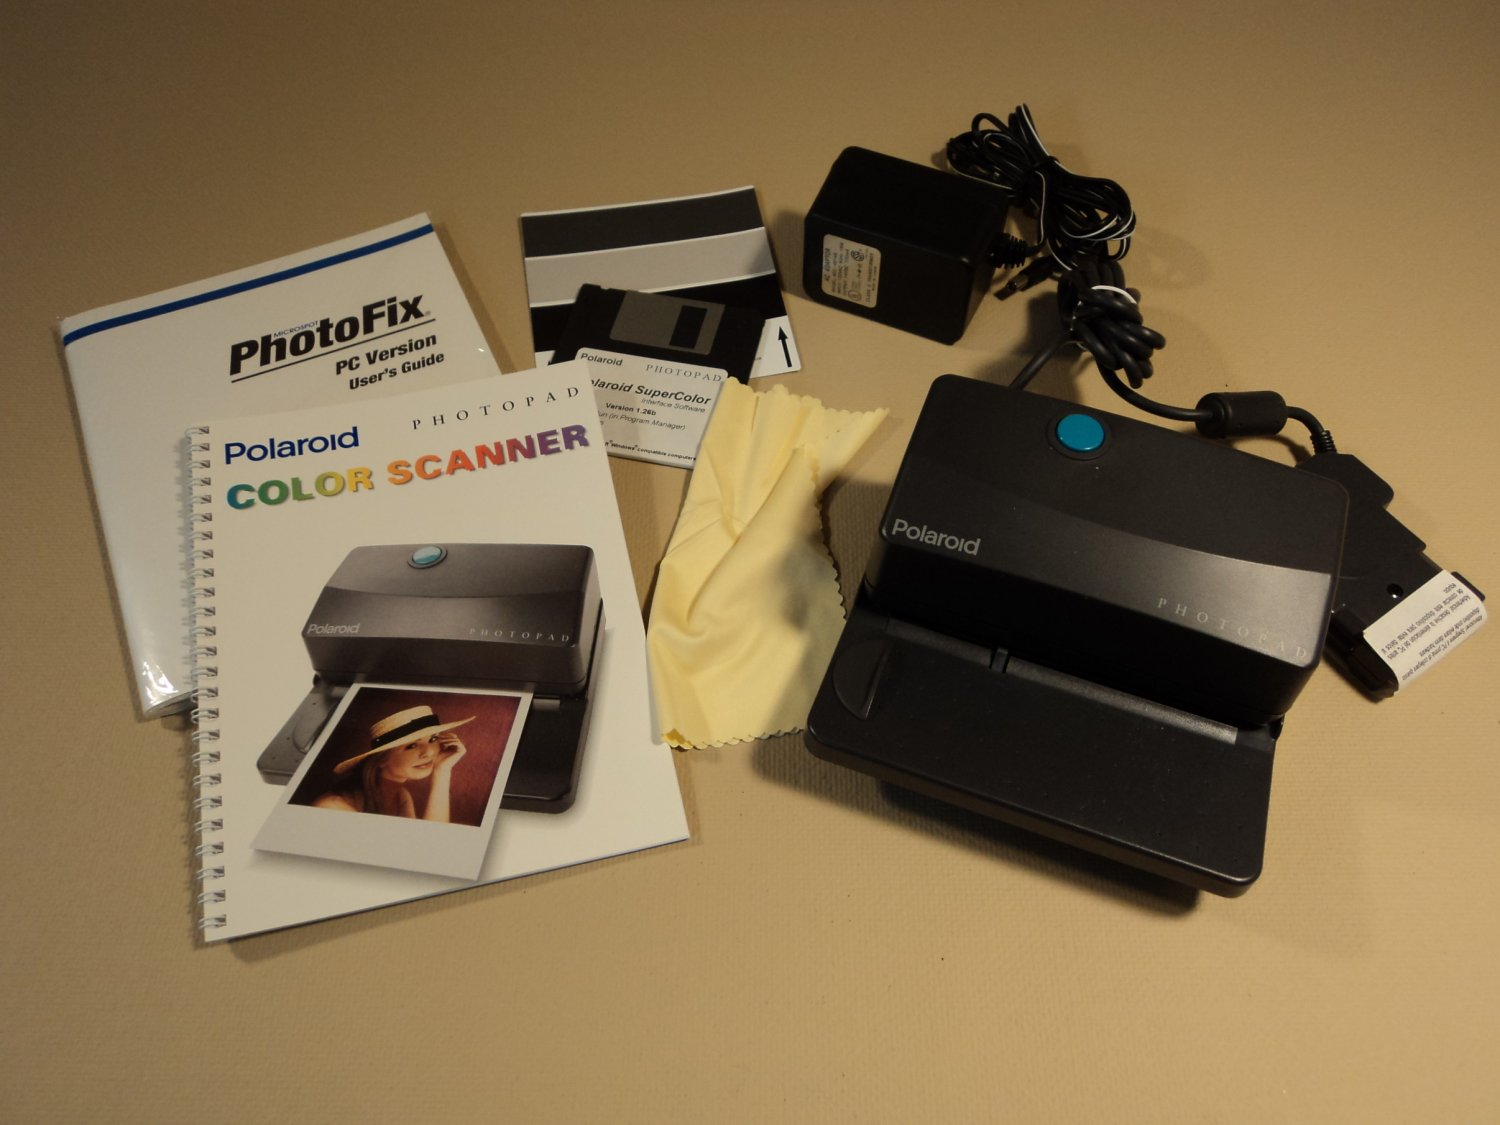 Polaroid Photopad Color Scanner 1625616